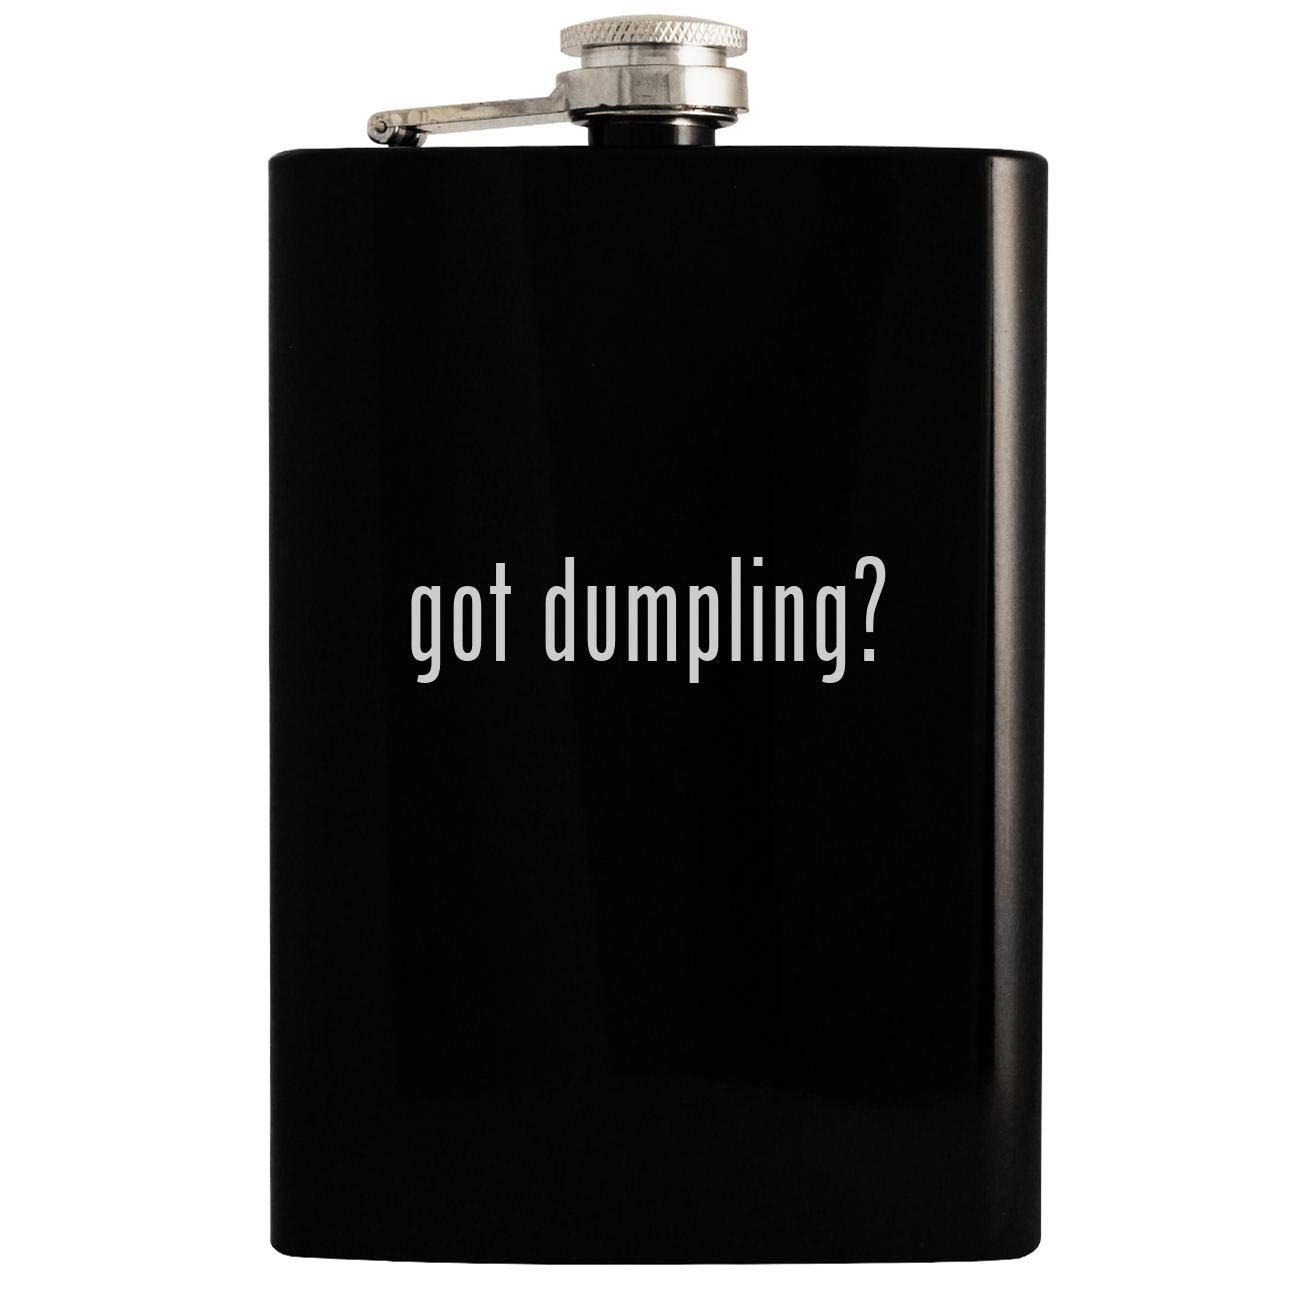 got dumpling? - Black 8oz Hip Drinking Alcohol Flask